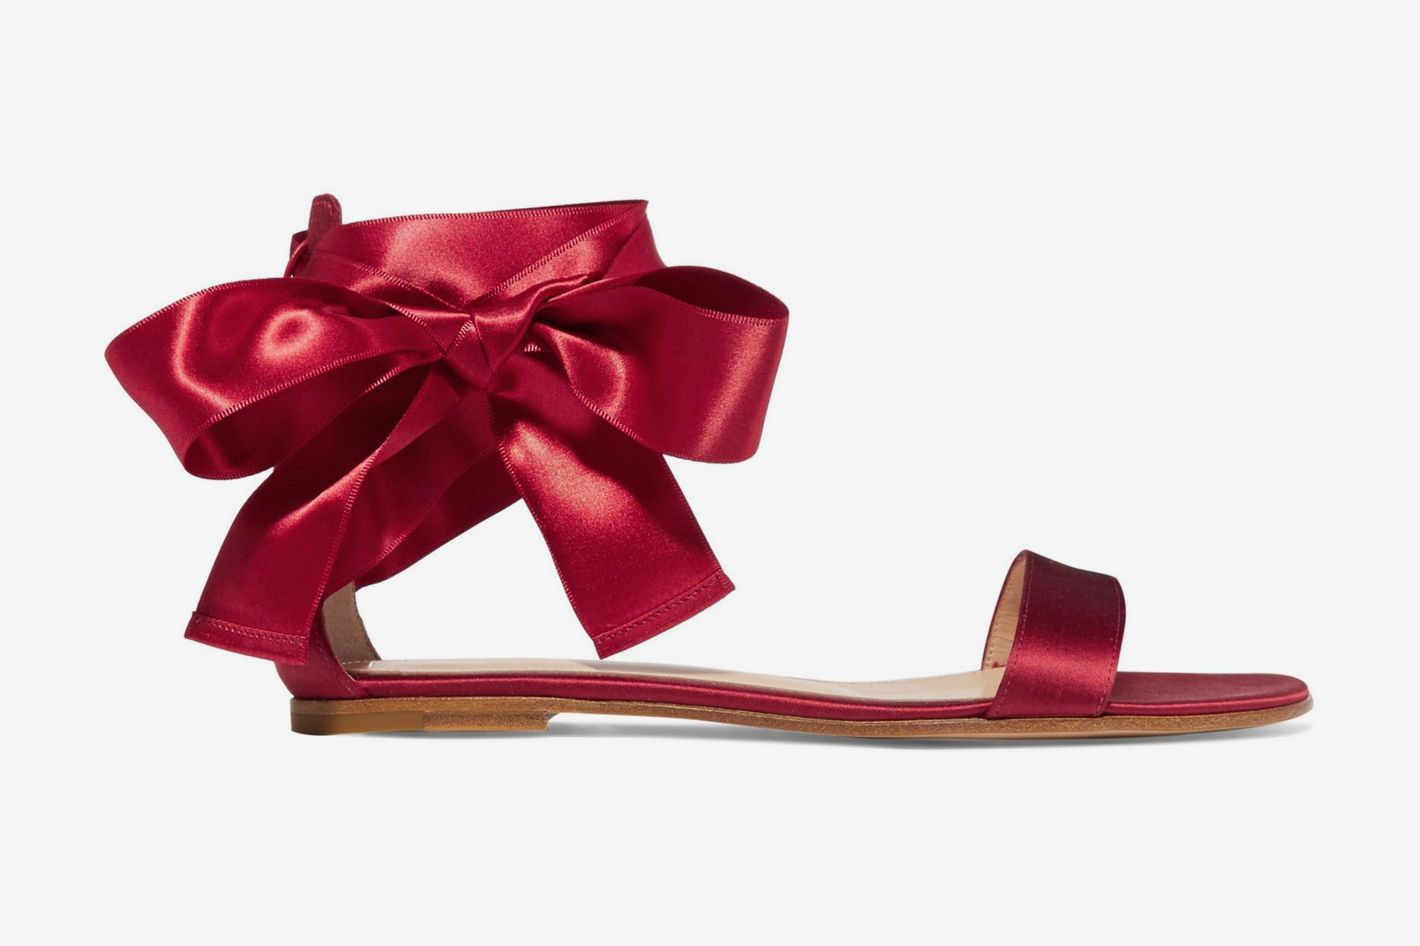 Gianvito Rossi Satin sandals